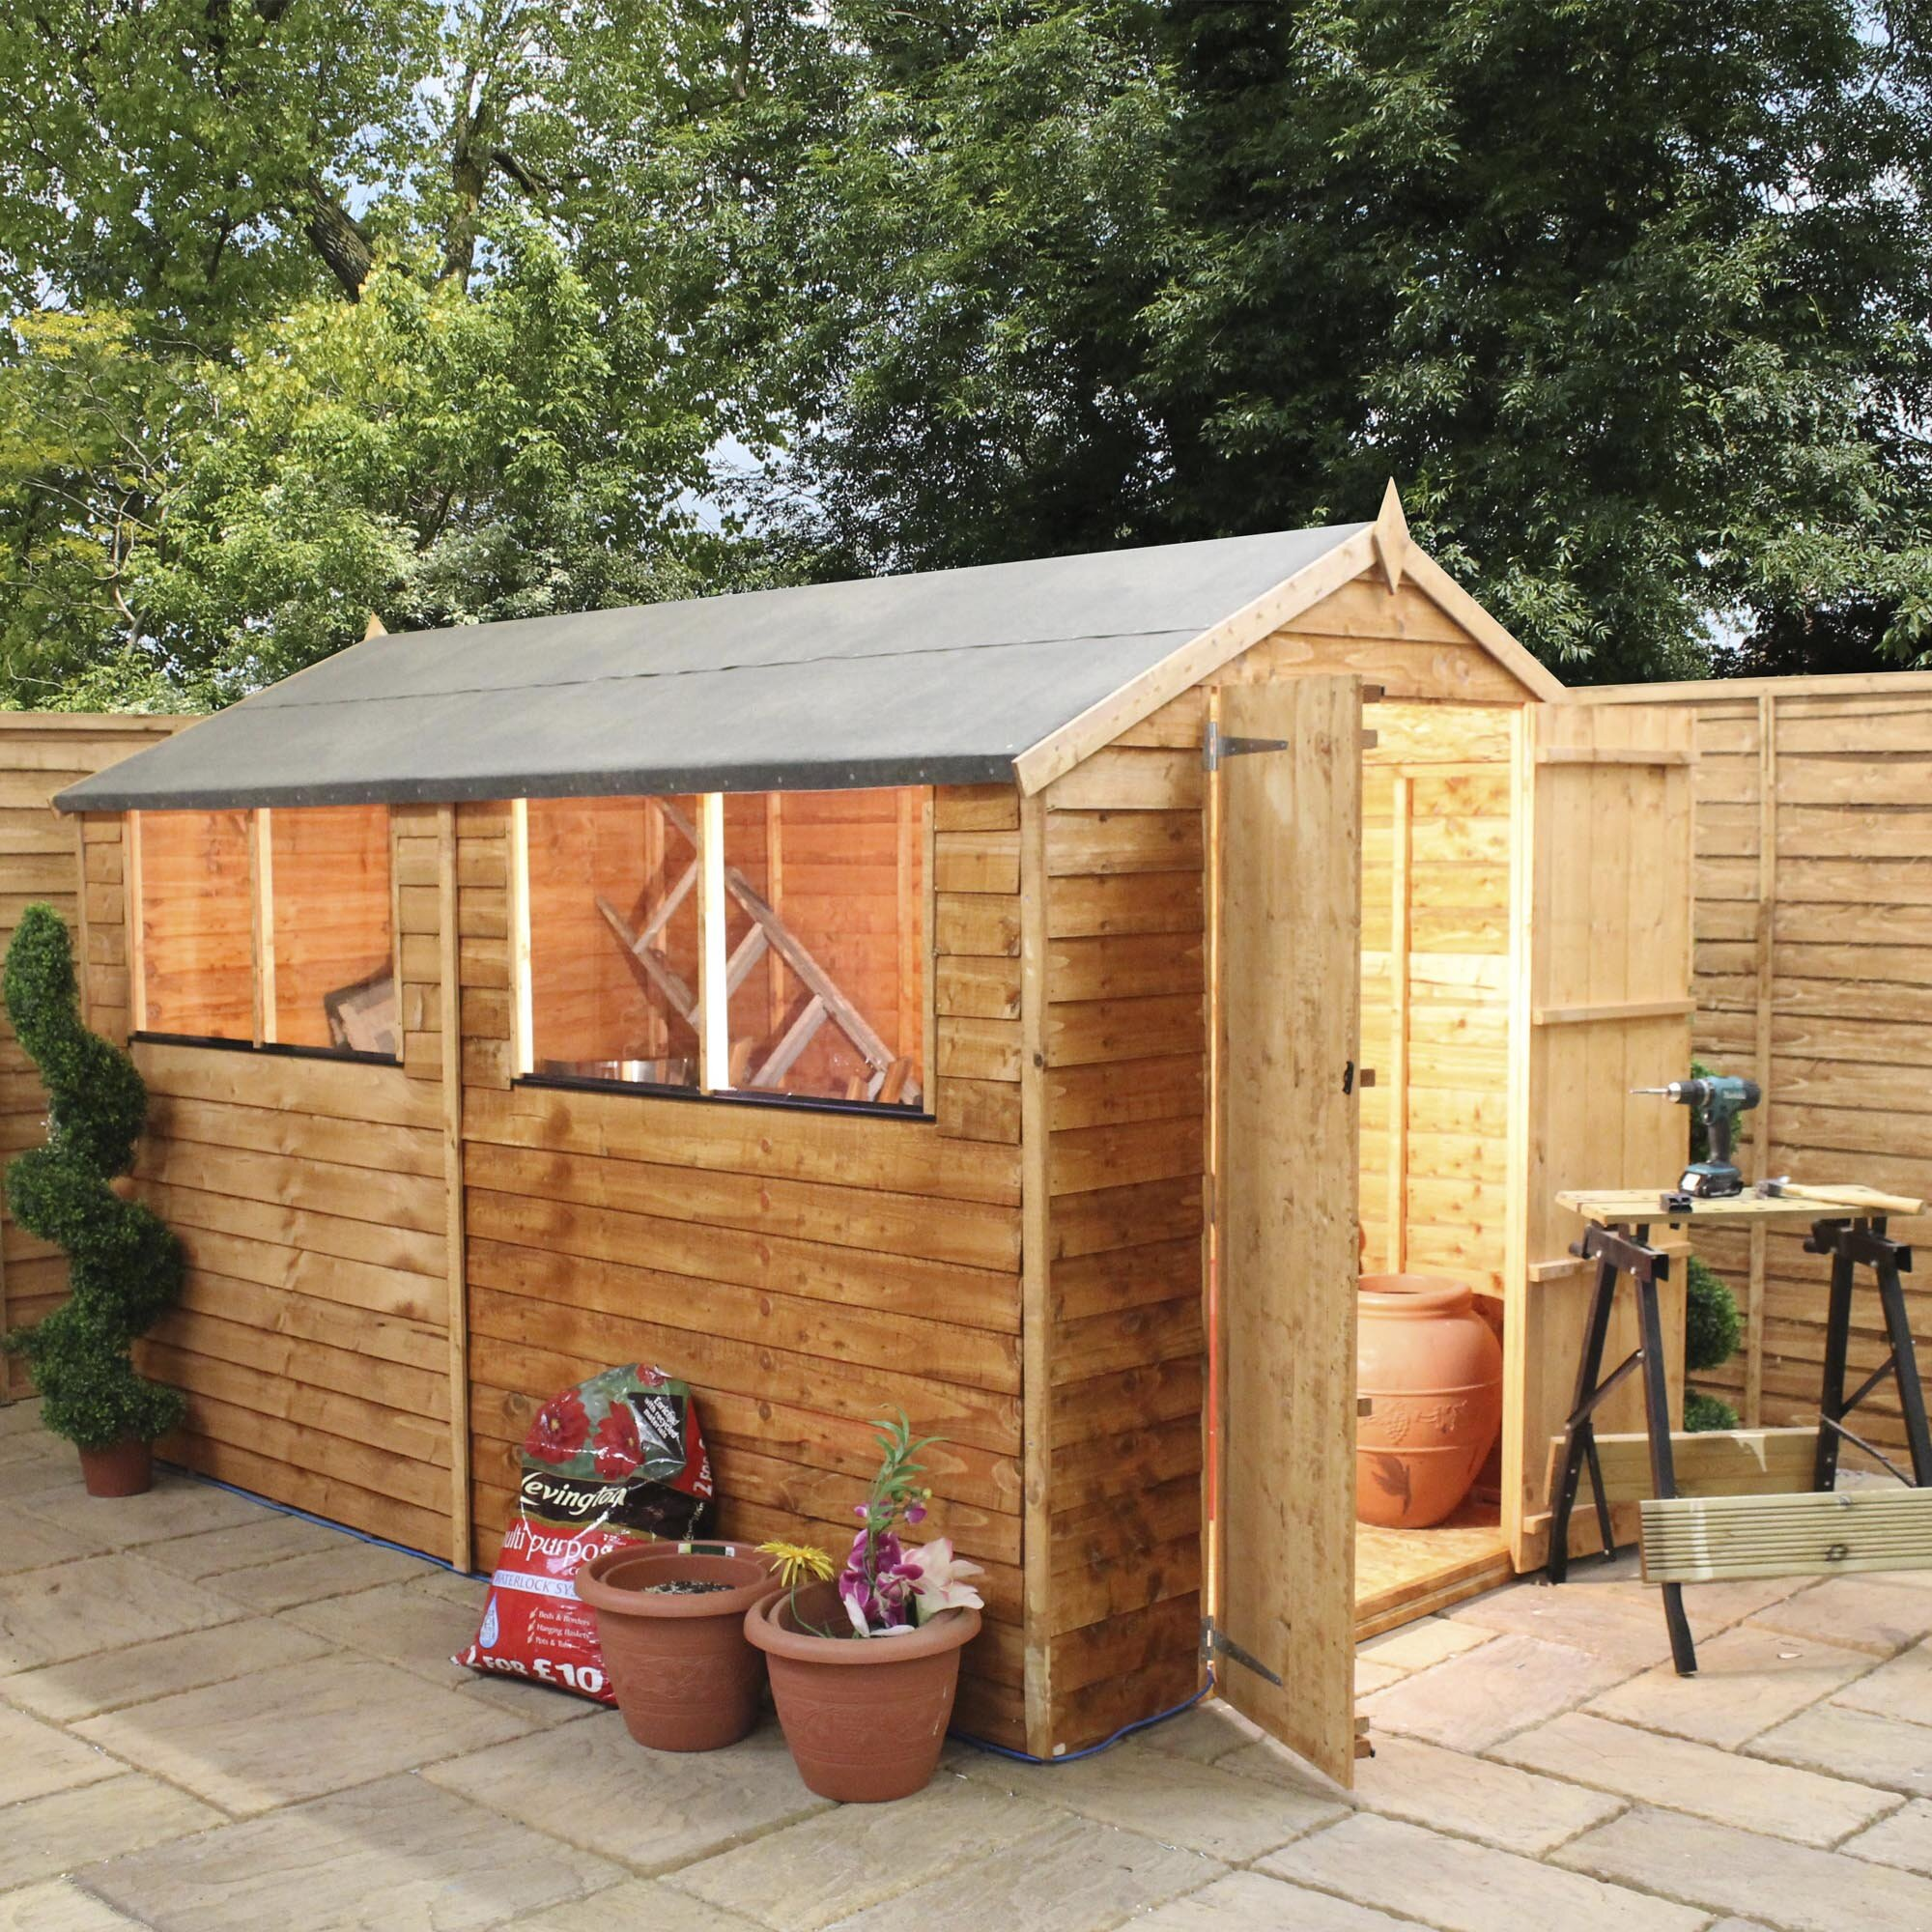 Mercia Garden Products 6 X 10 Wooden Overlap Apex Storage Shed & Reviews